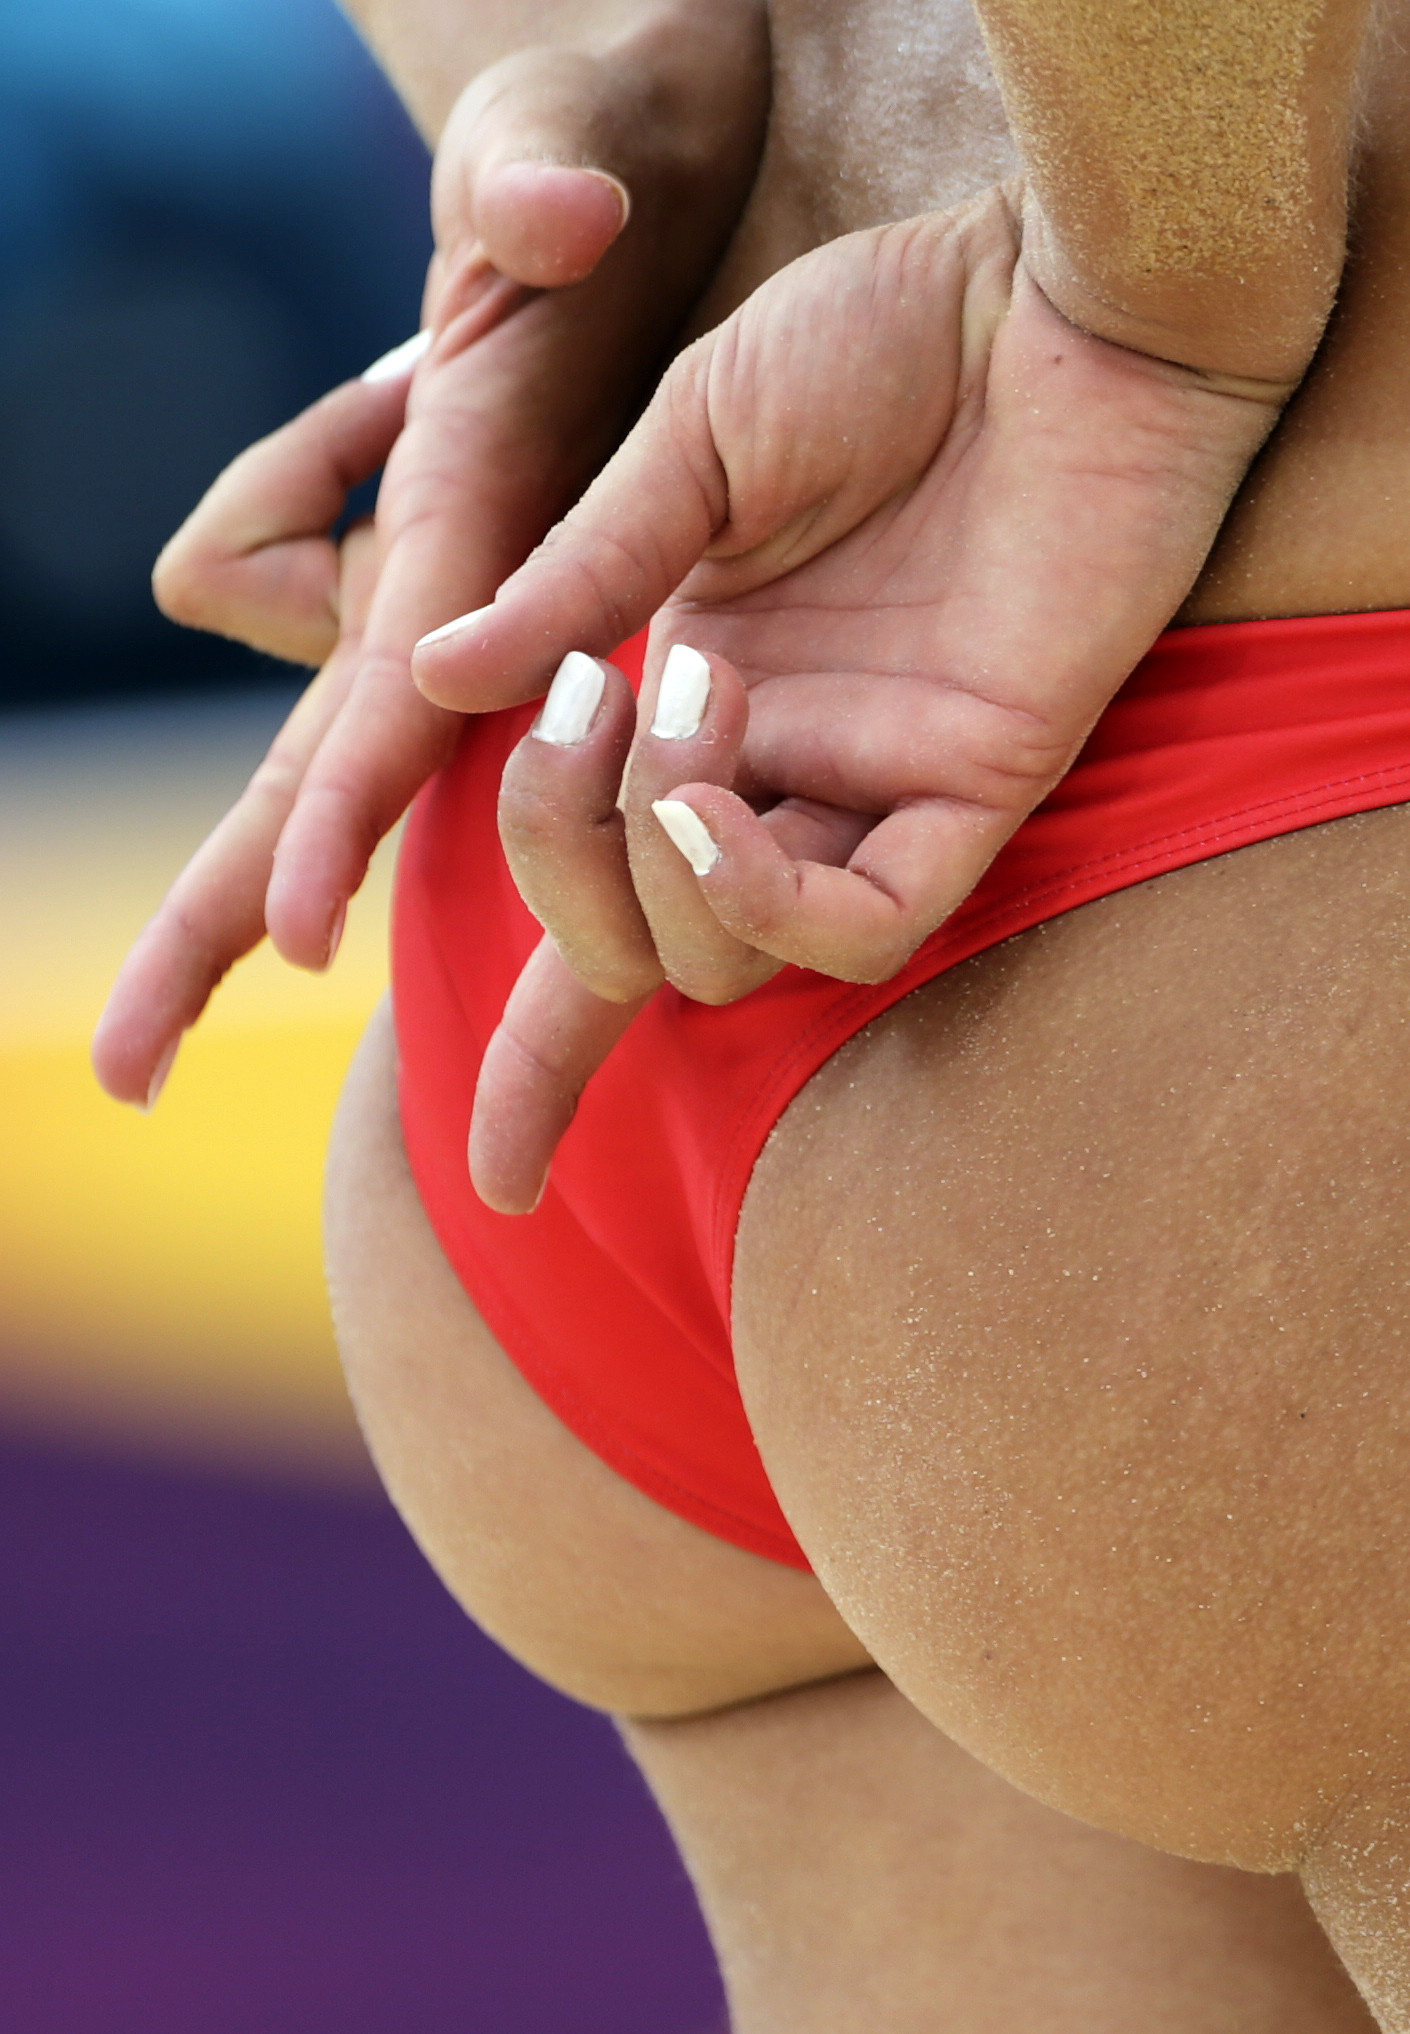 Beach Volleyball Photos Focus On Women's Body Parts -- Not Their